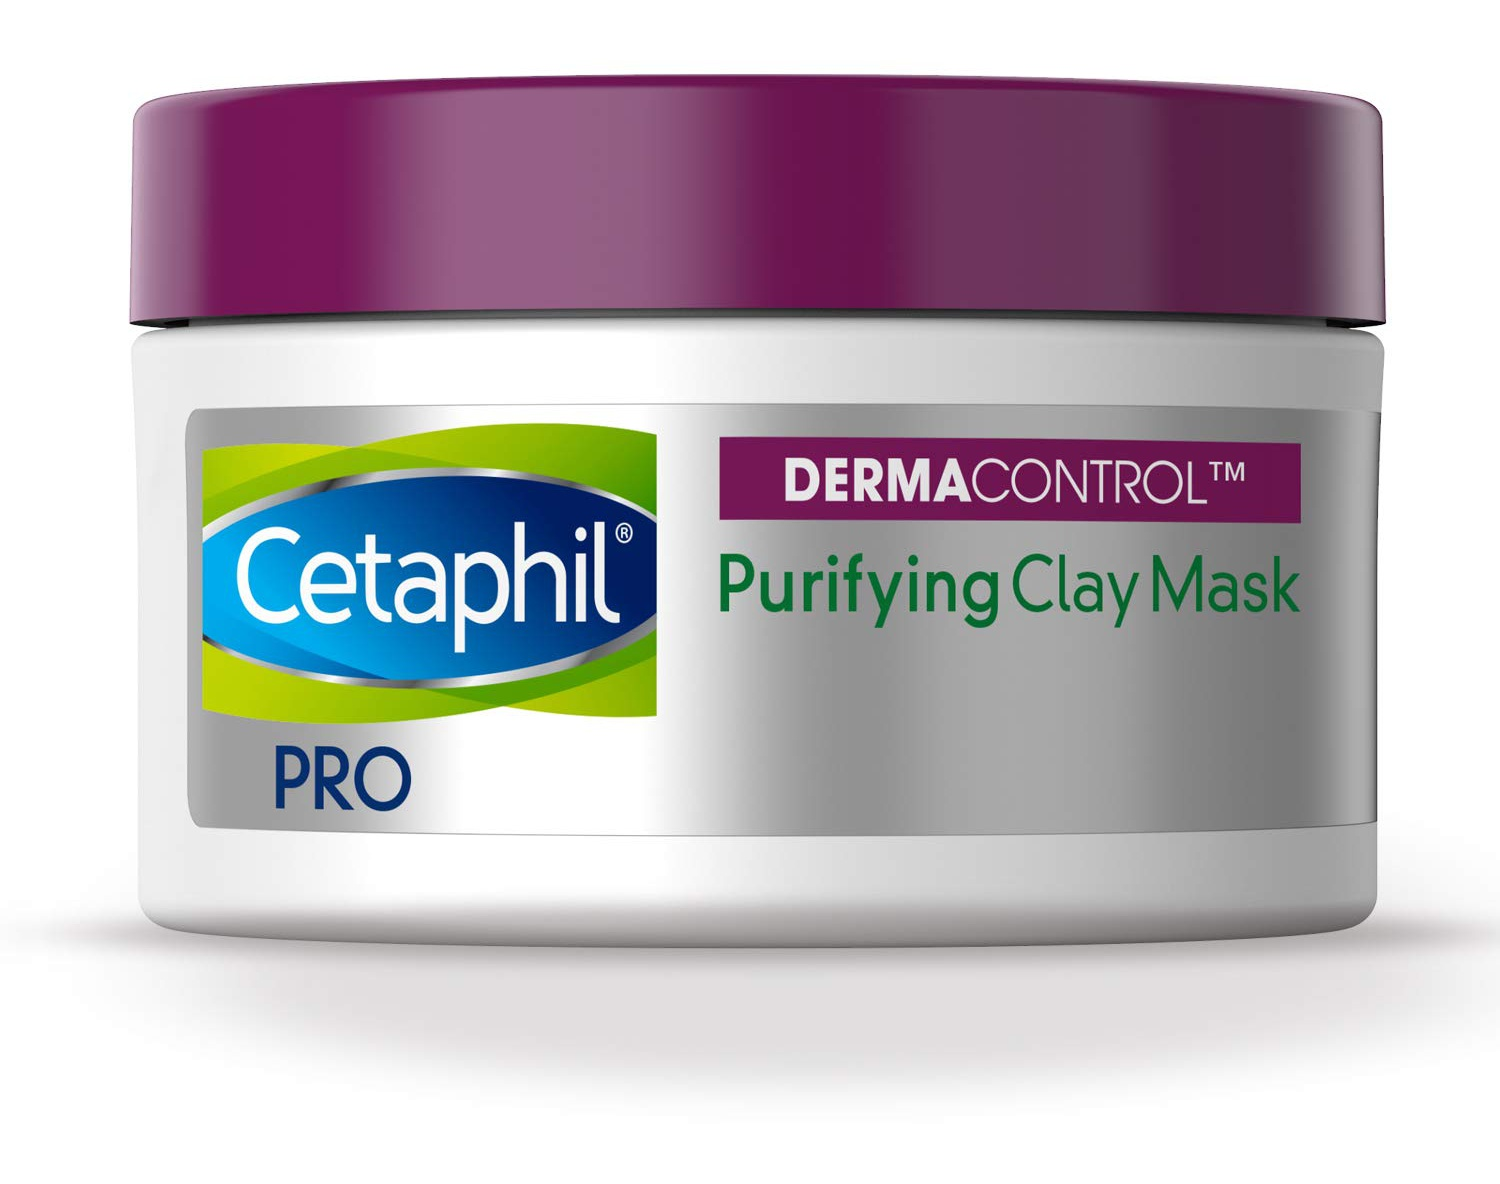 Cetaphil Purifying Clay Mask